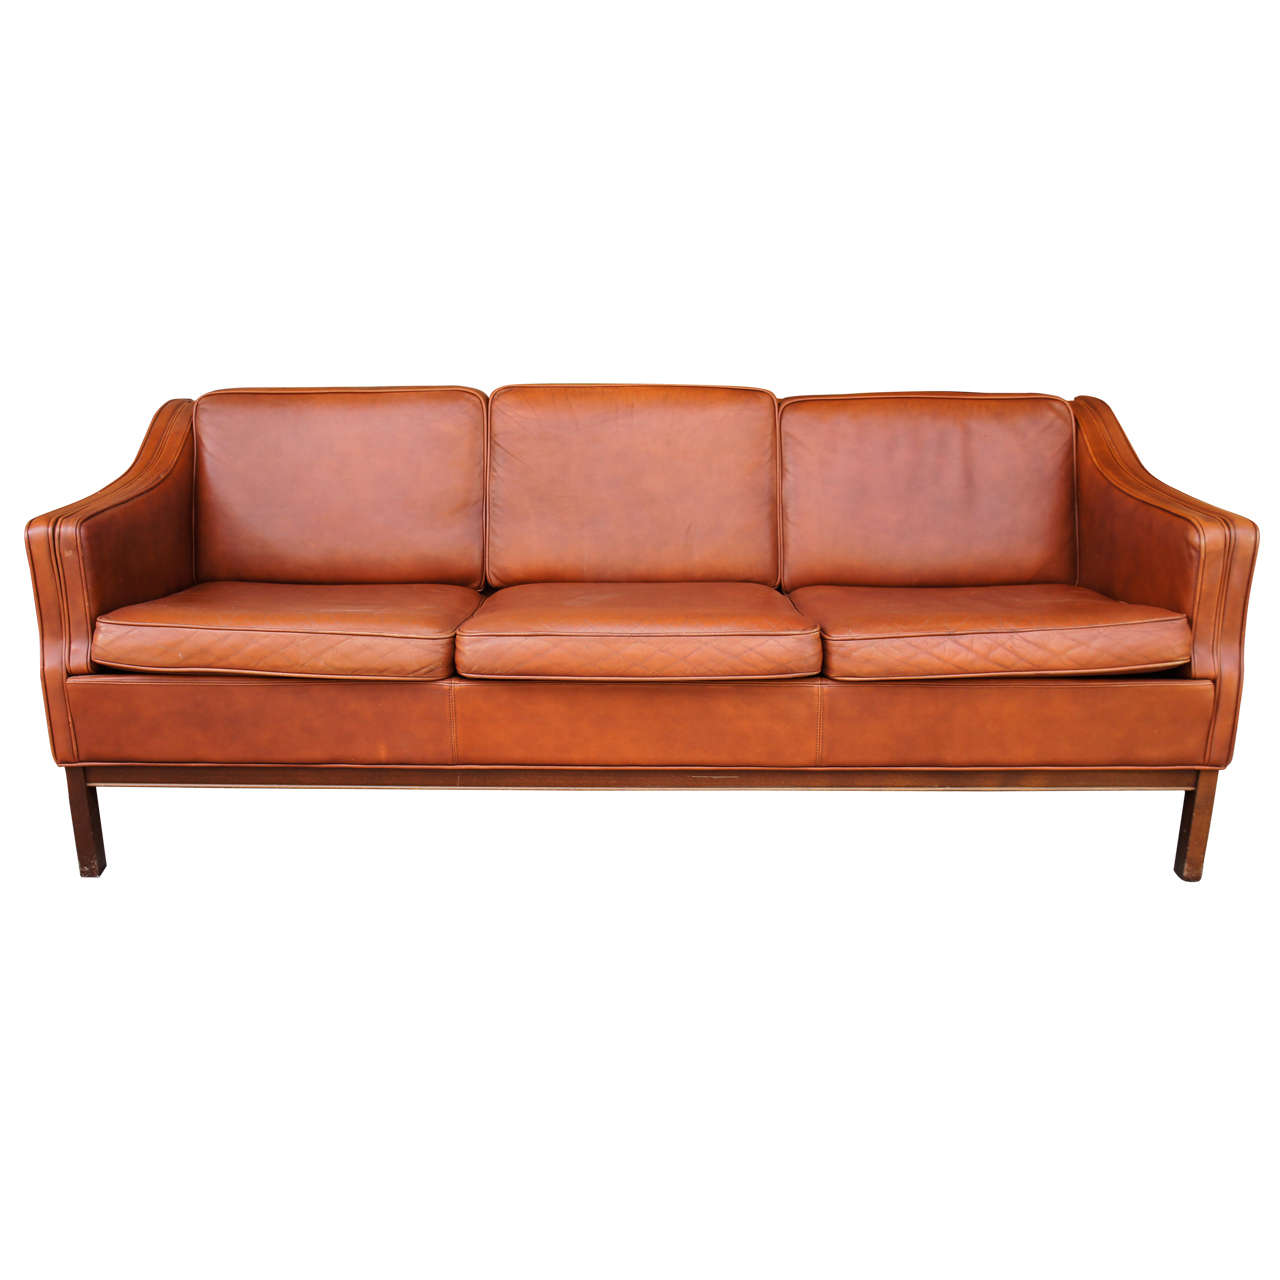 danish modern 1960s leather upholstered sofa at 1stdibs